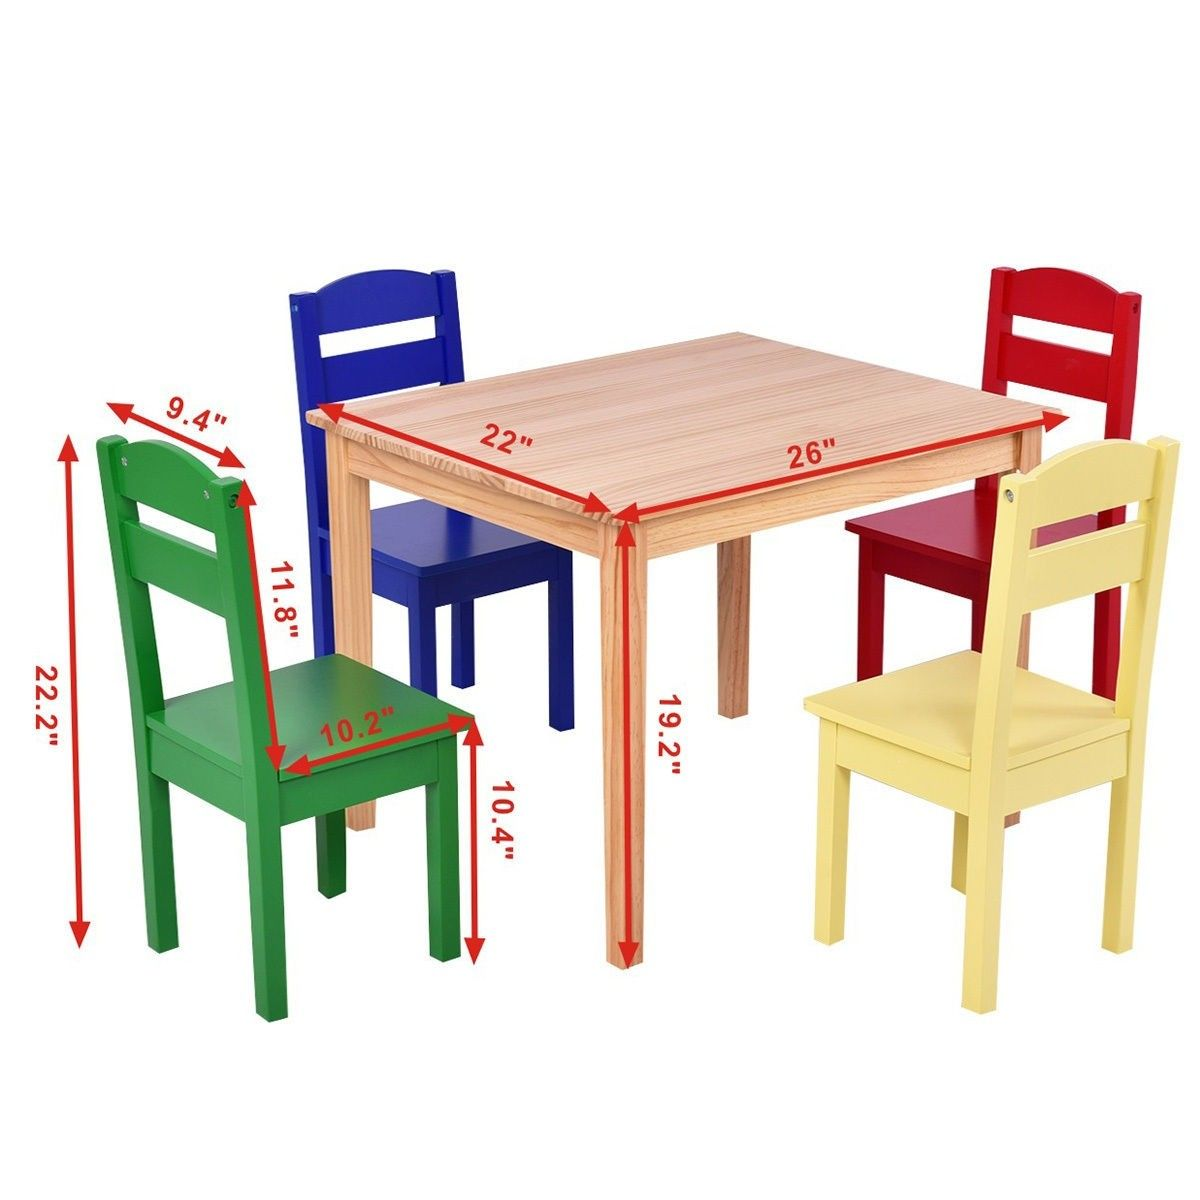 5 Pcs Kids Pine Wood Table Chair Set Kids Wooden Table Pine Chairs Wooden Table And Chairs